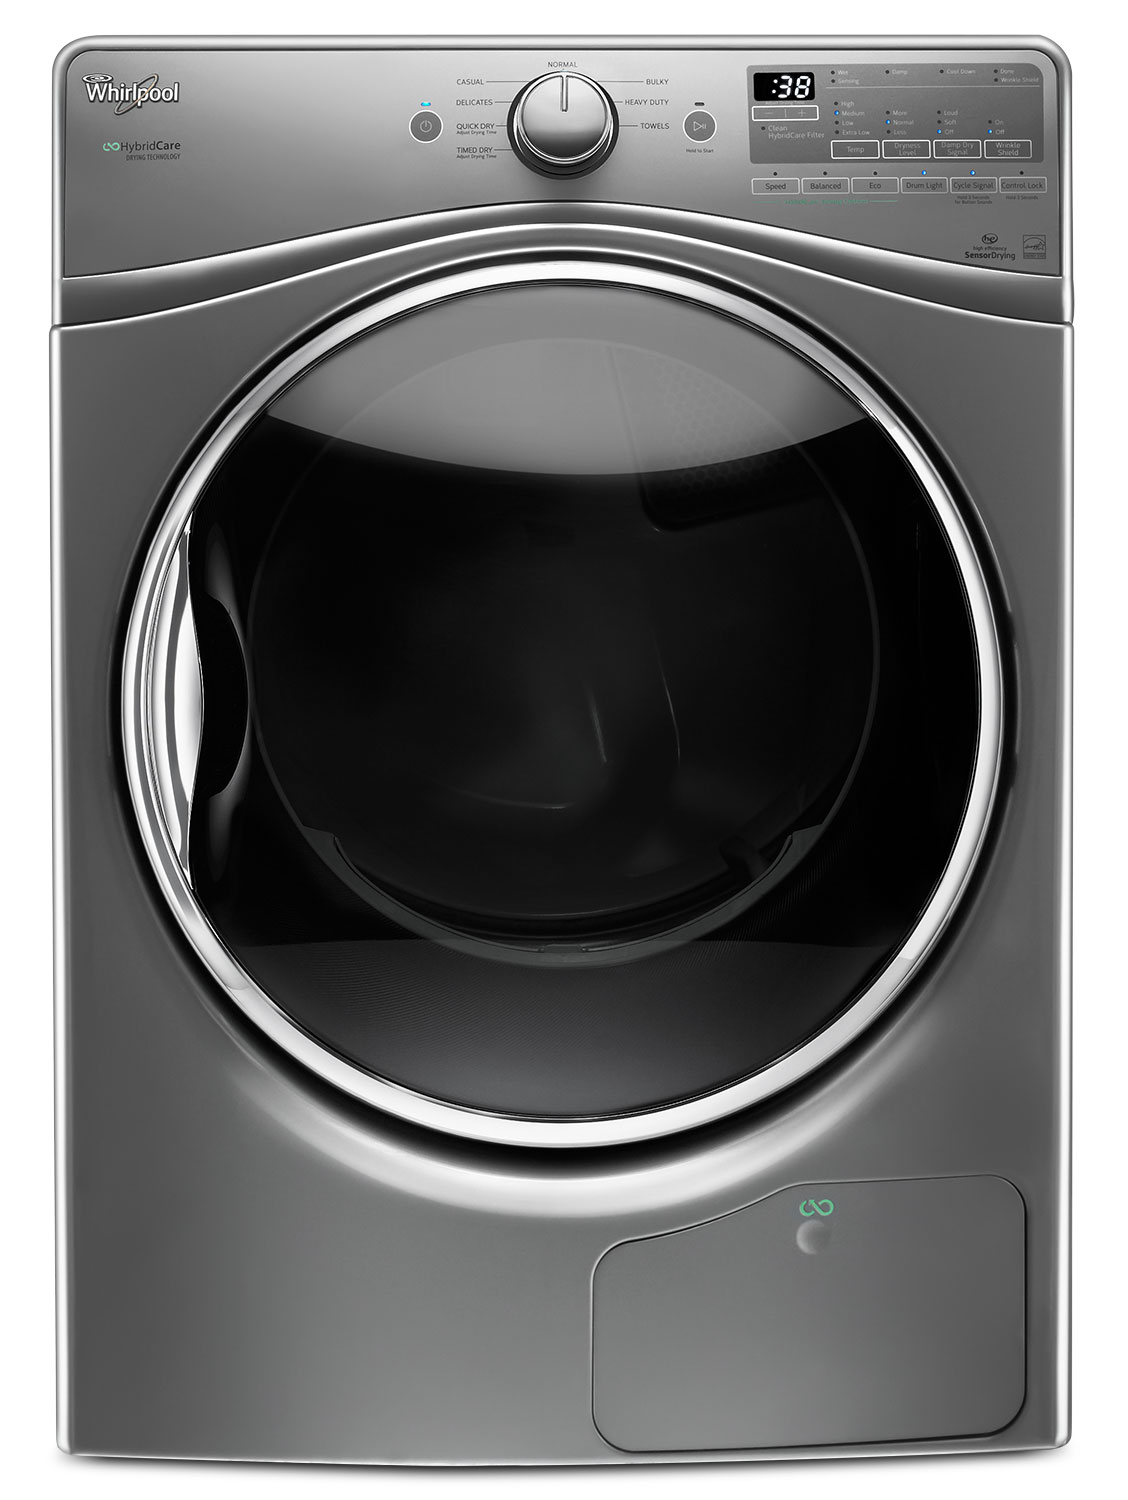 Whirlpool Chrome Shadow Dryer (8.5 Cu. Ft.) - YWED9290FC